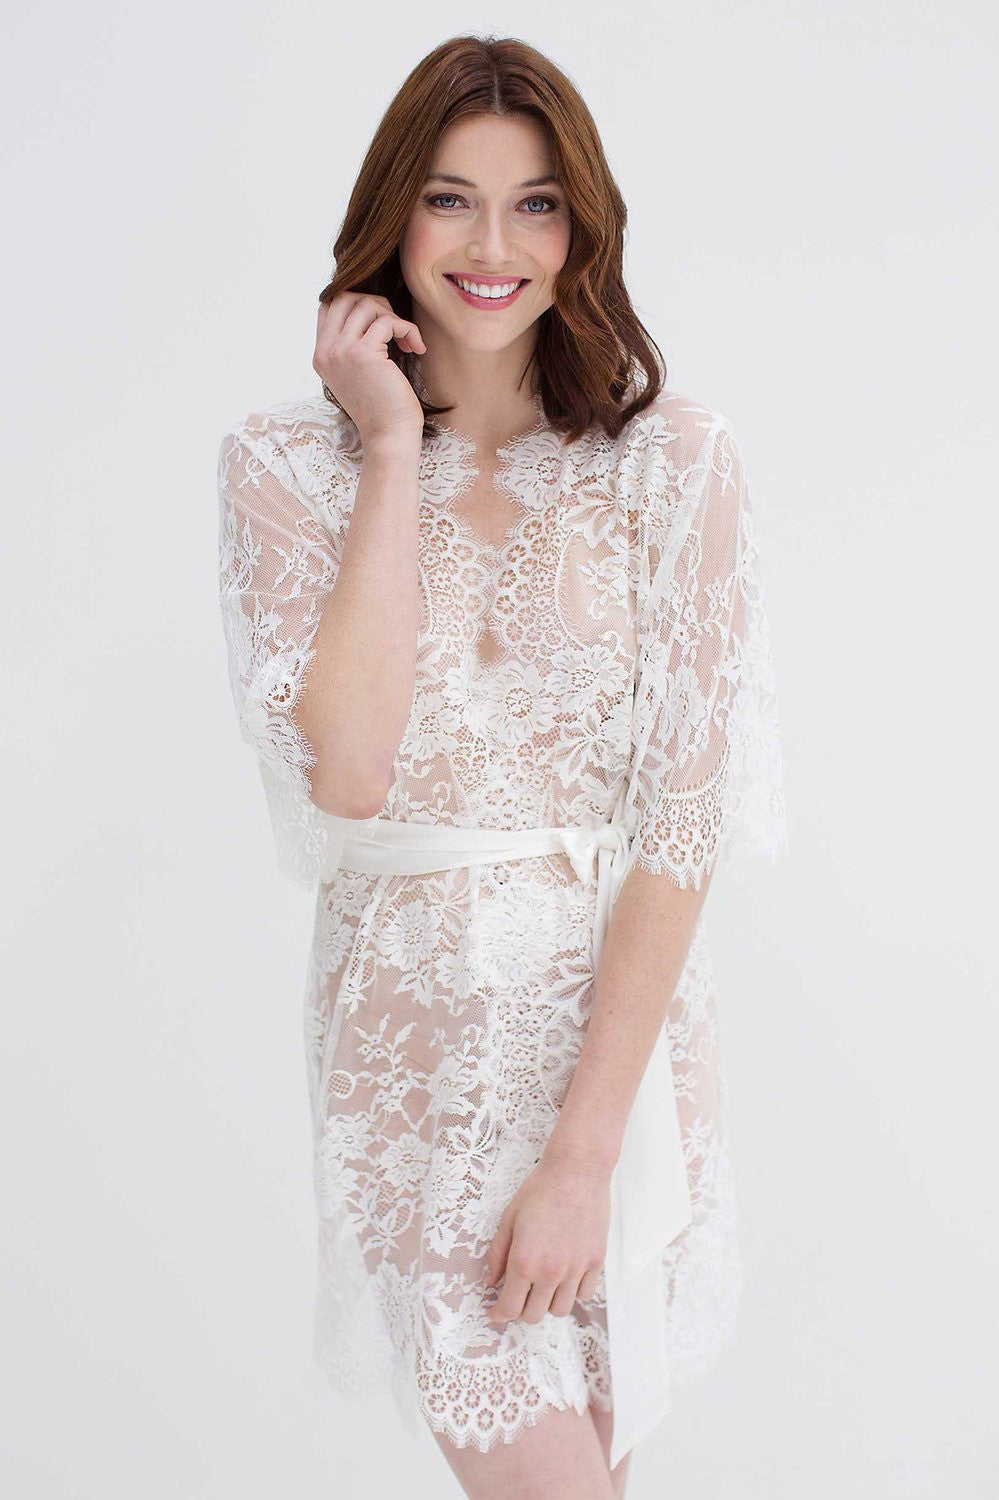 finest selection pick up top style Swan Queen lace kimono bridal robe in ivory - style 102SH